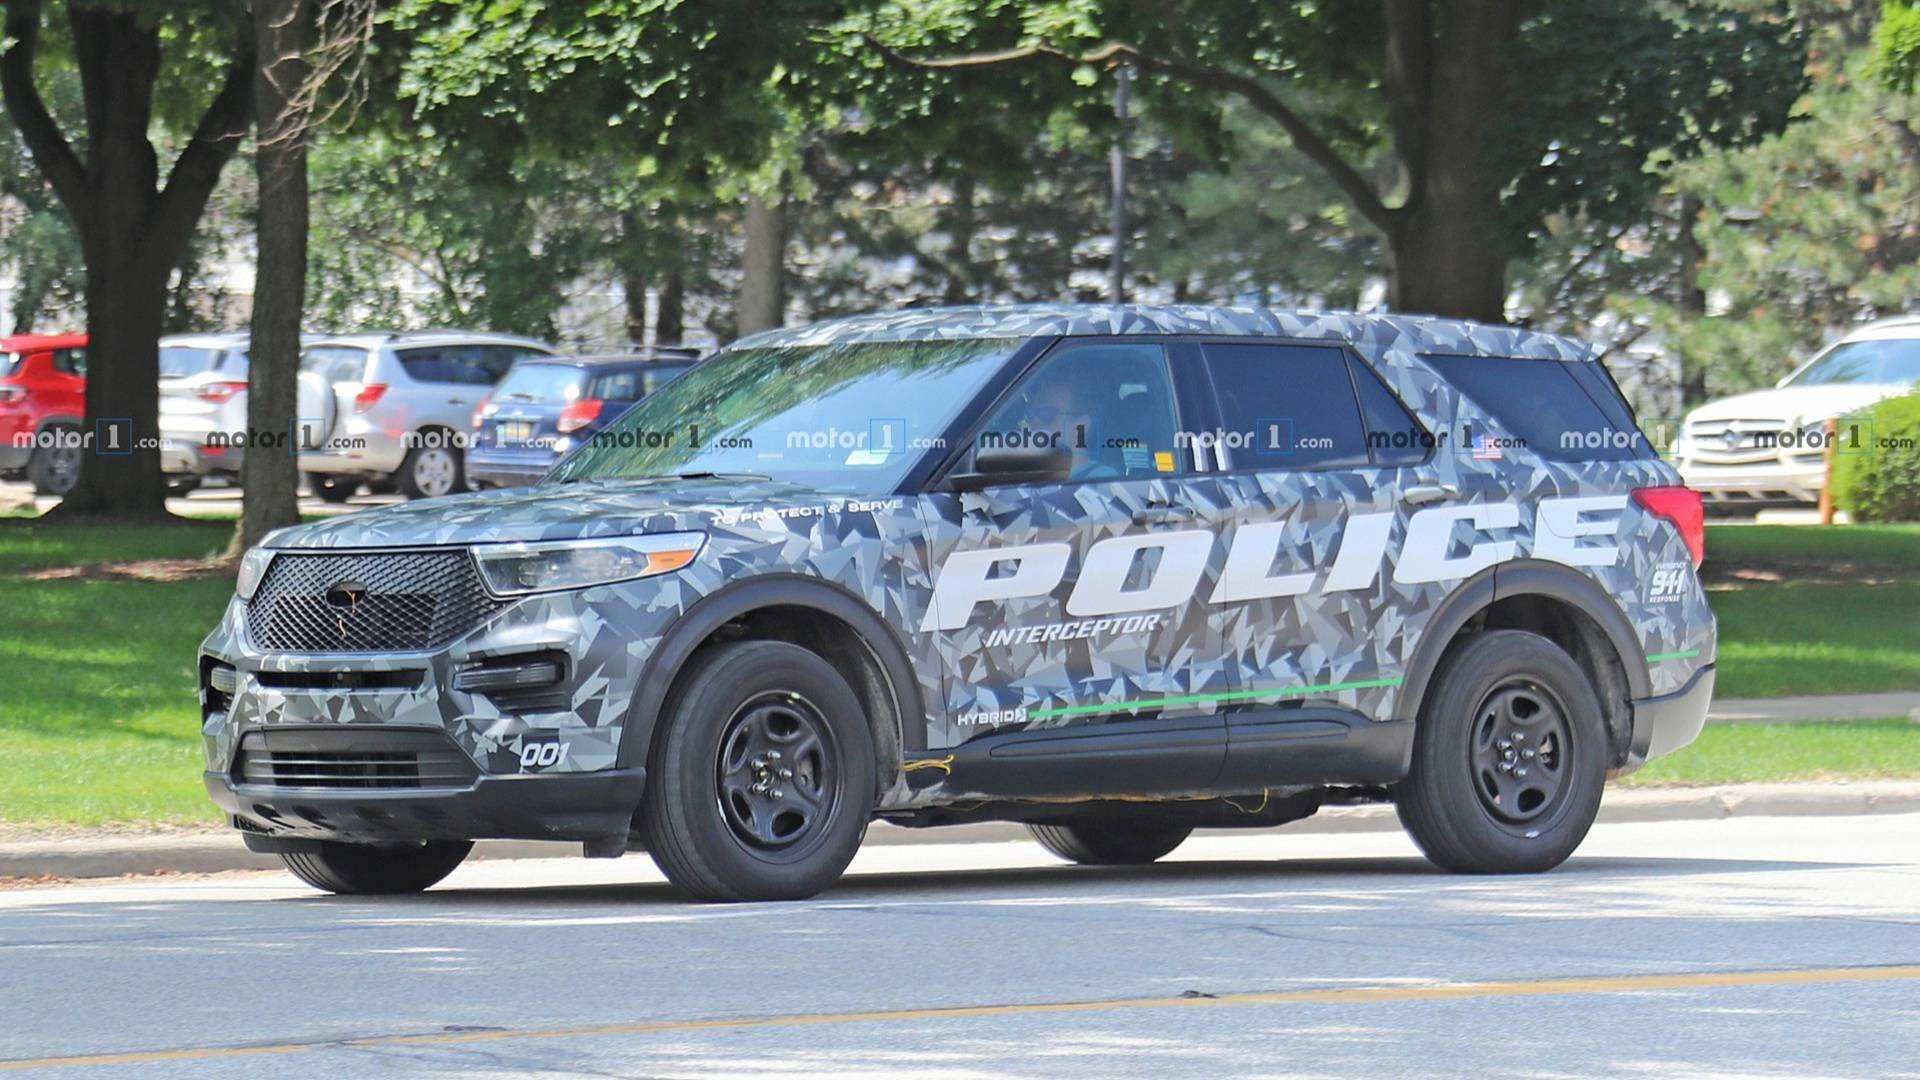 36 Gallery of Ford Interceptor 2020 Spy Shoot with Ford Interceptor 2020